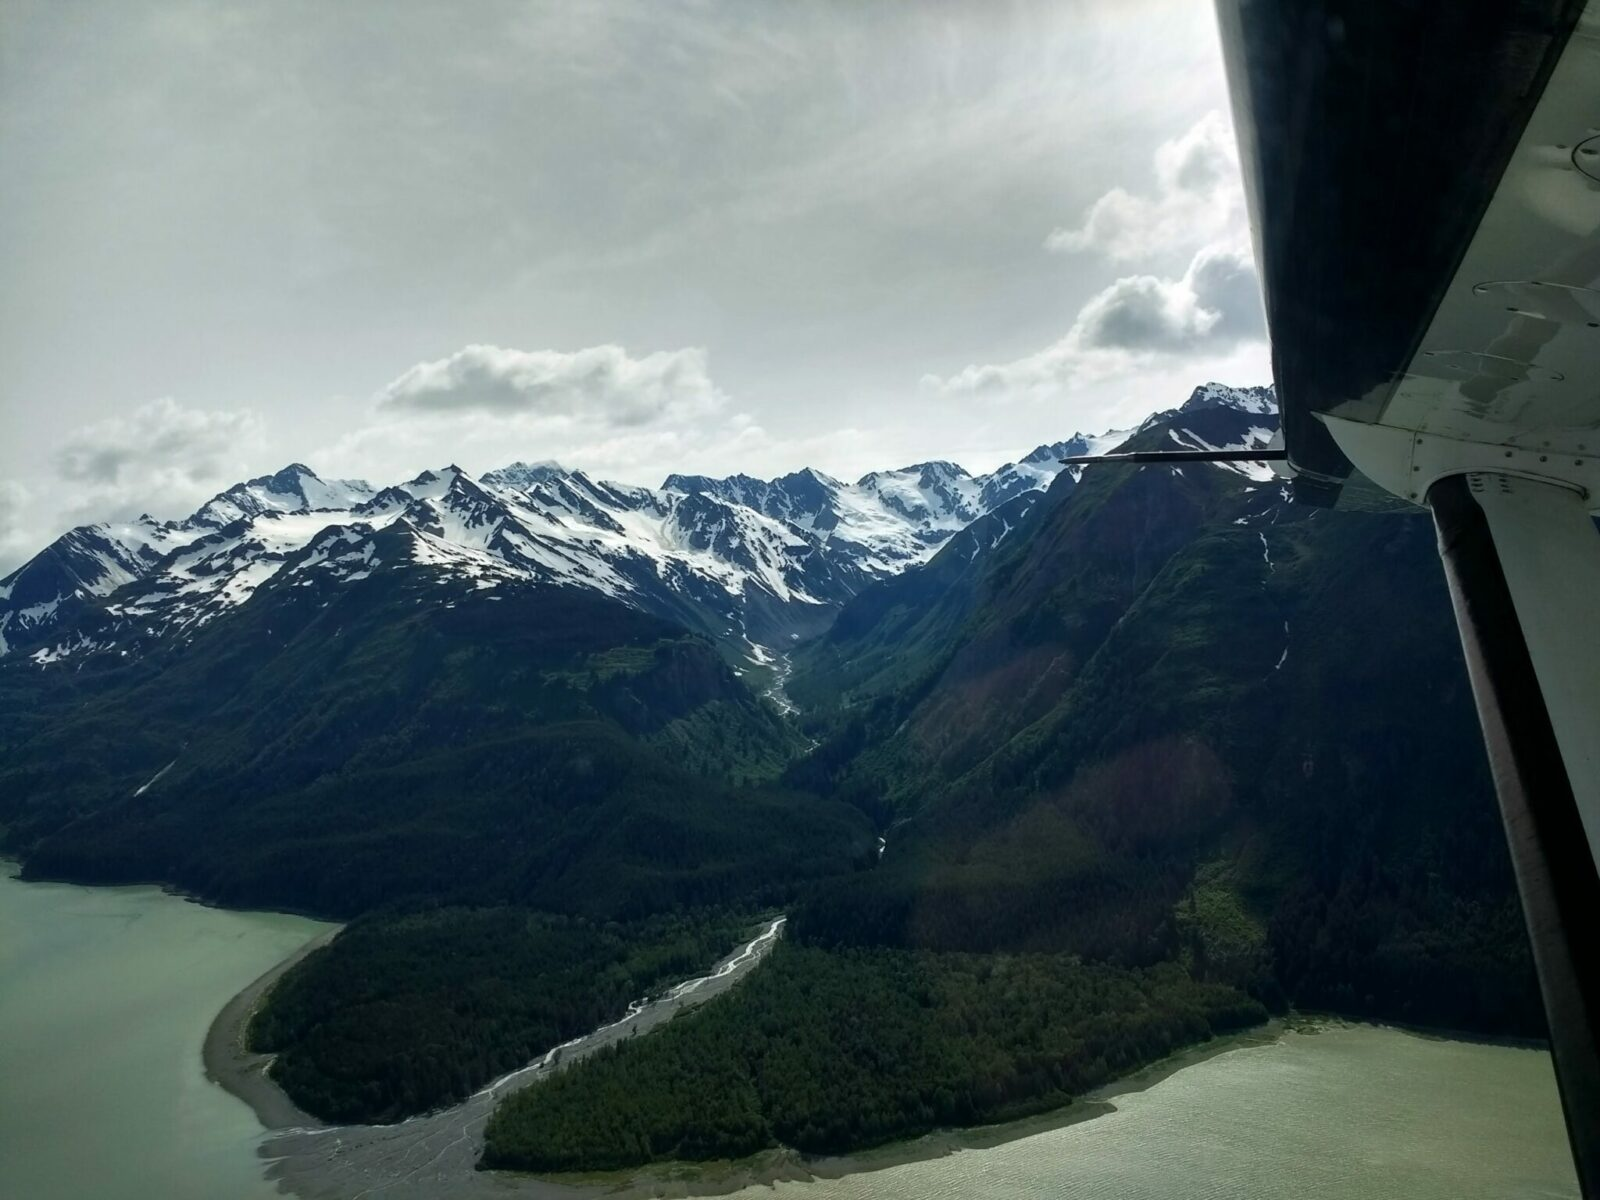 An airplane wing seen from inside a small plane between Haines and Juneau Alaska. Out the window of the plan there is a river coming into the ocean through a forested valley. High snowy mountains and glaciers are above the valley on a partly cloudy day